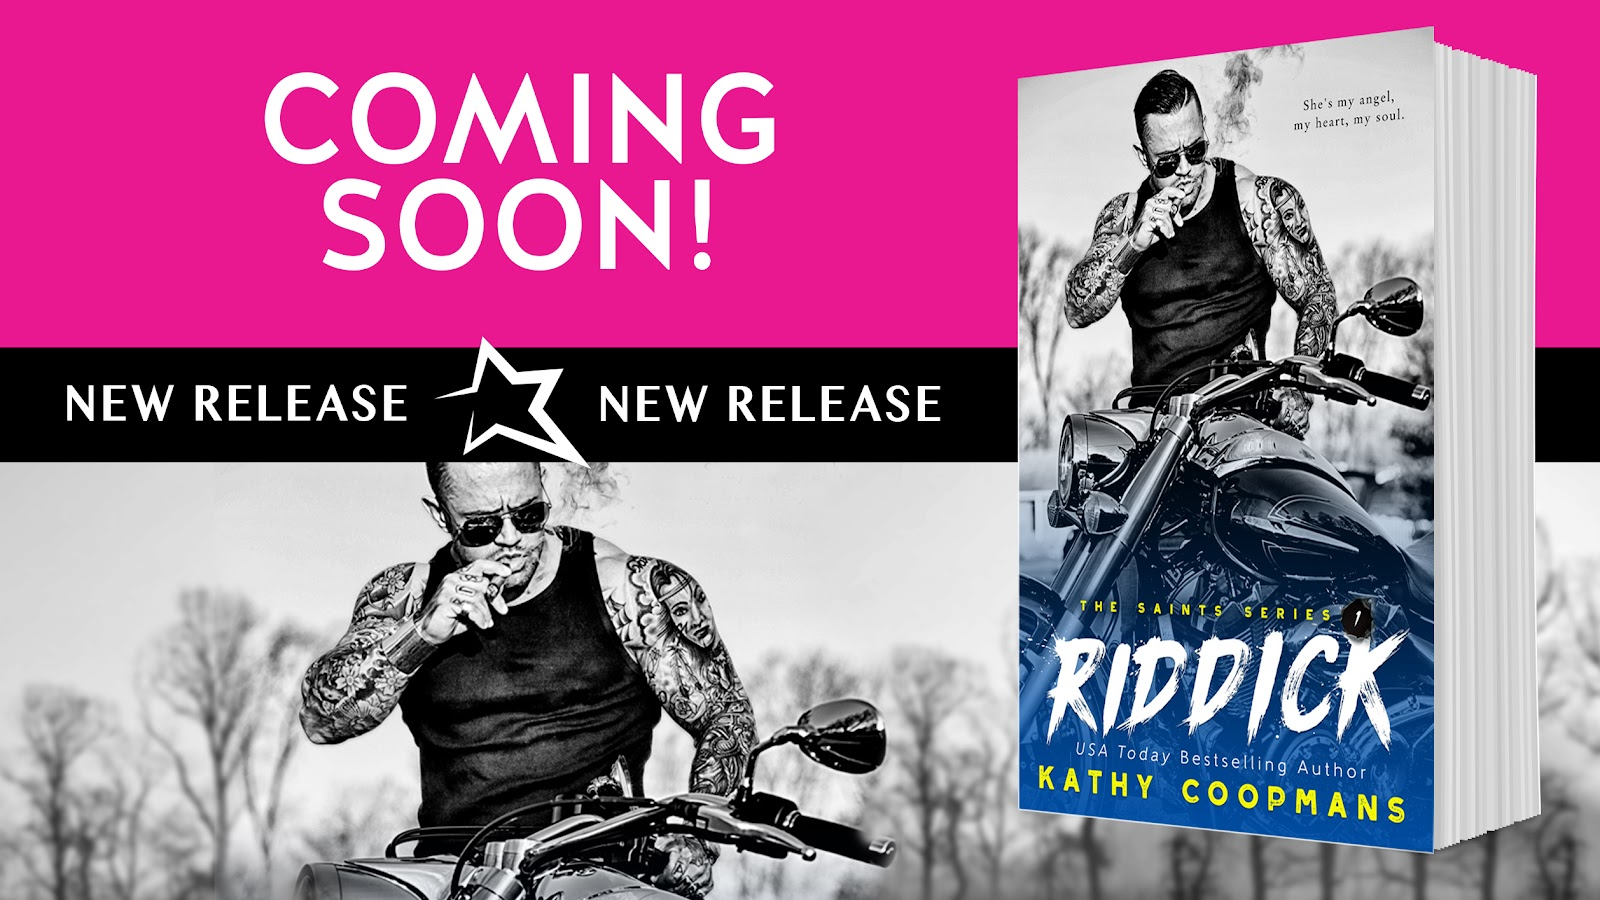 RIDDICK_COMING_SOON.jpg